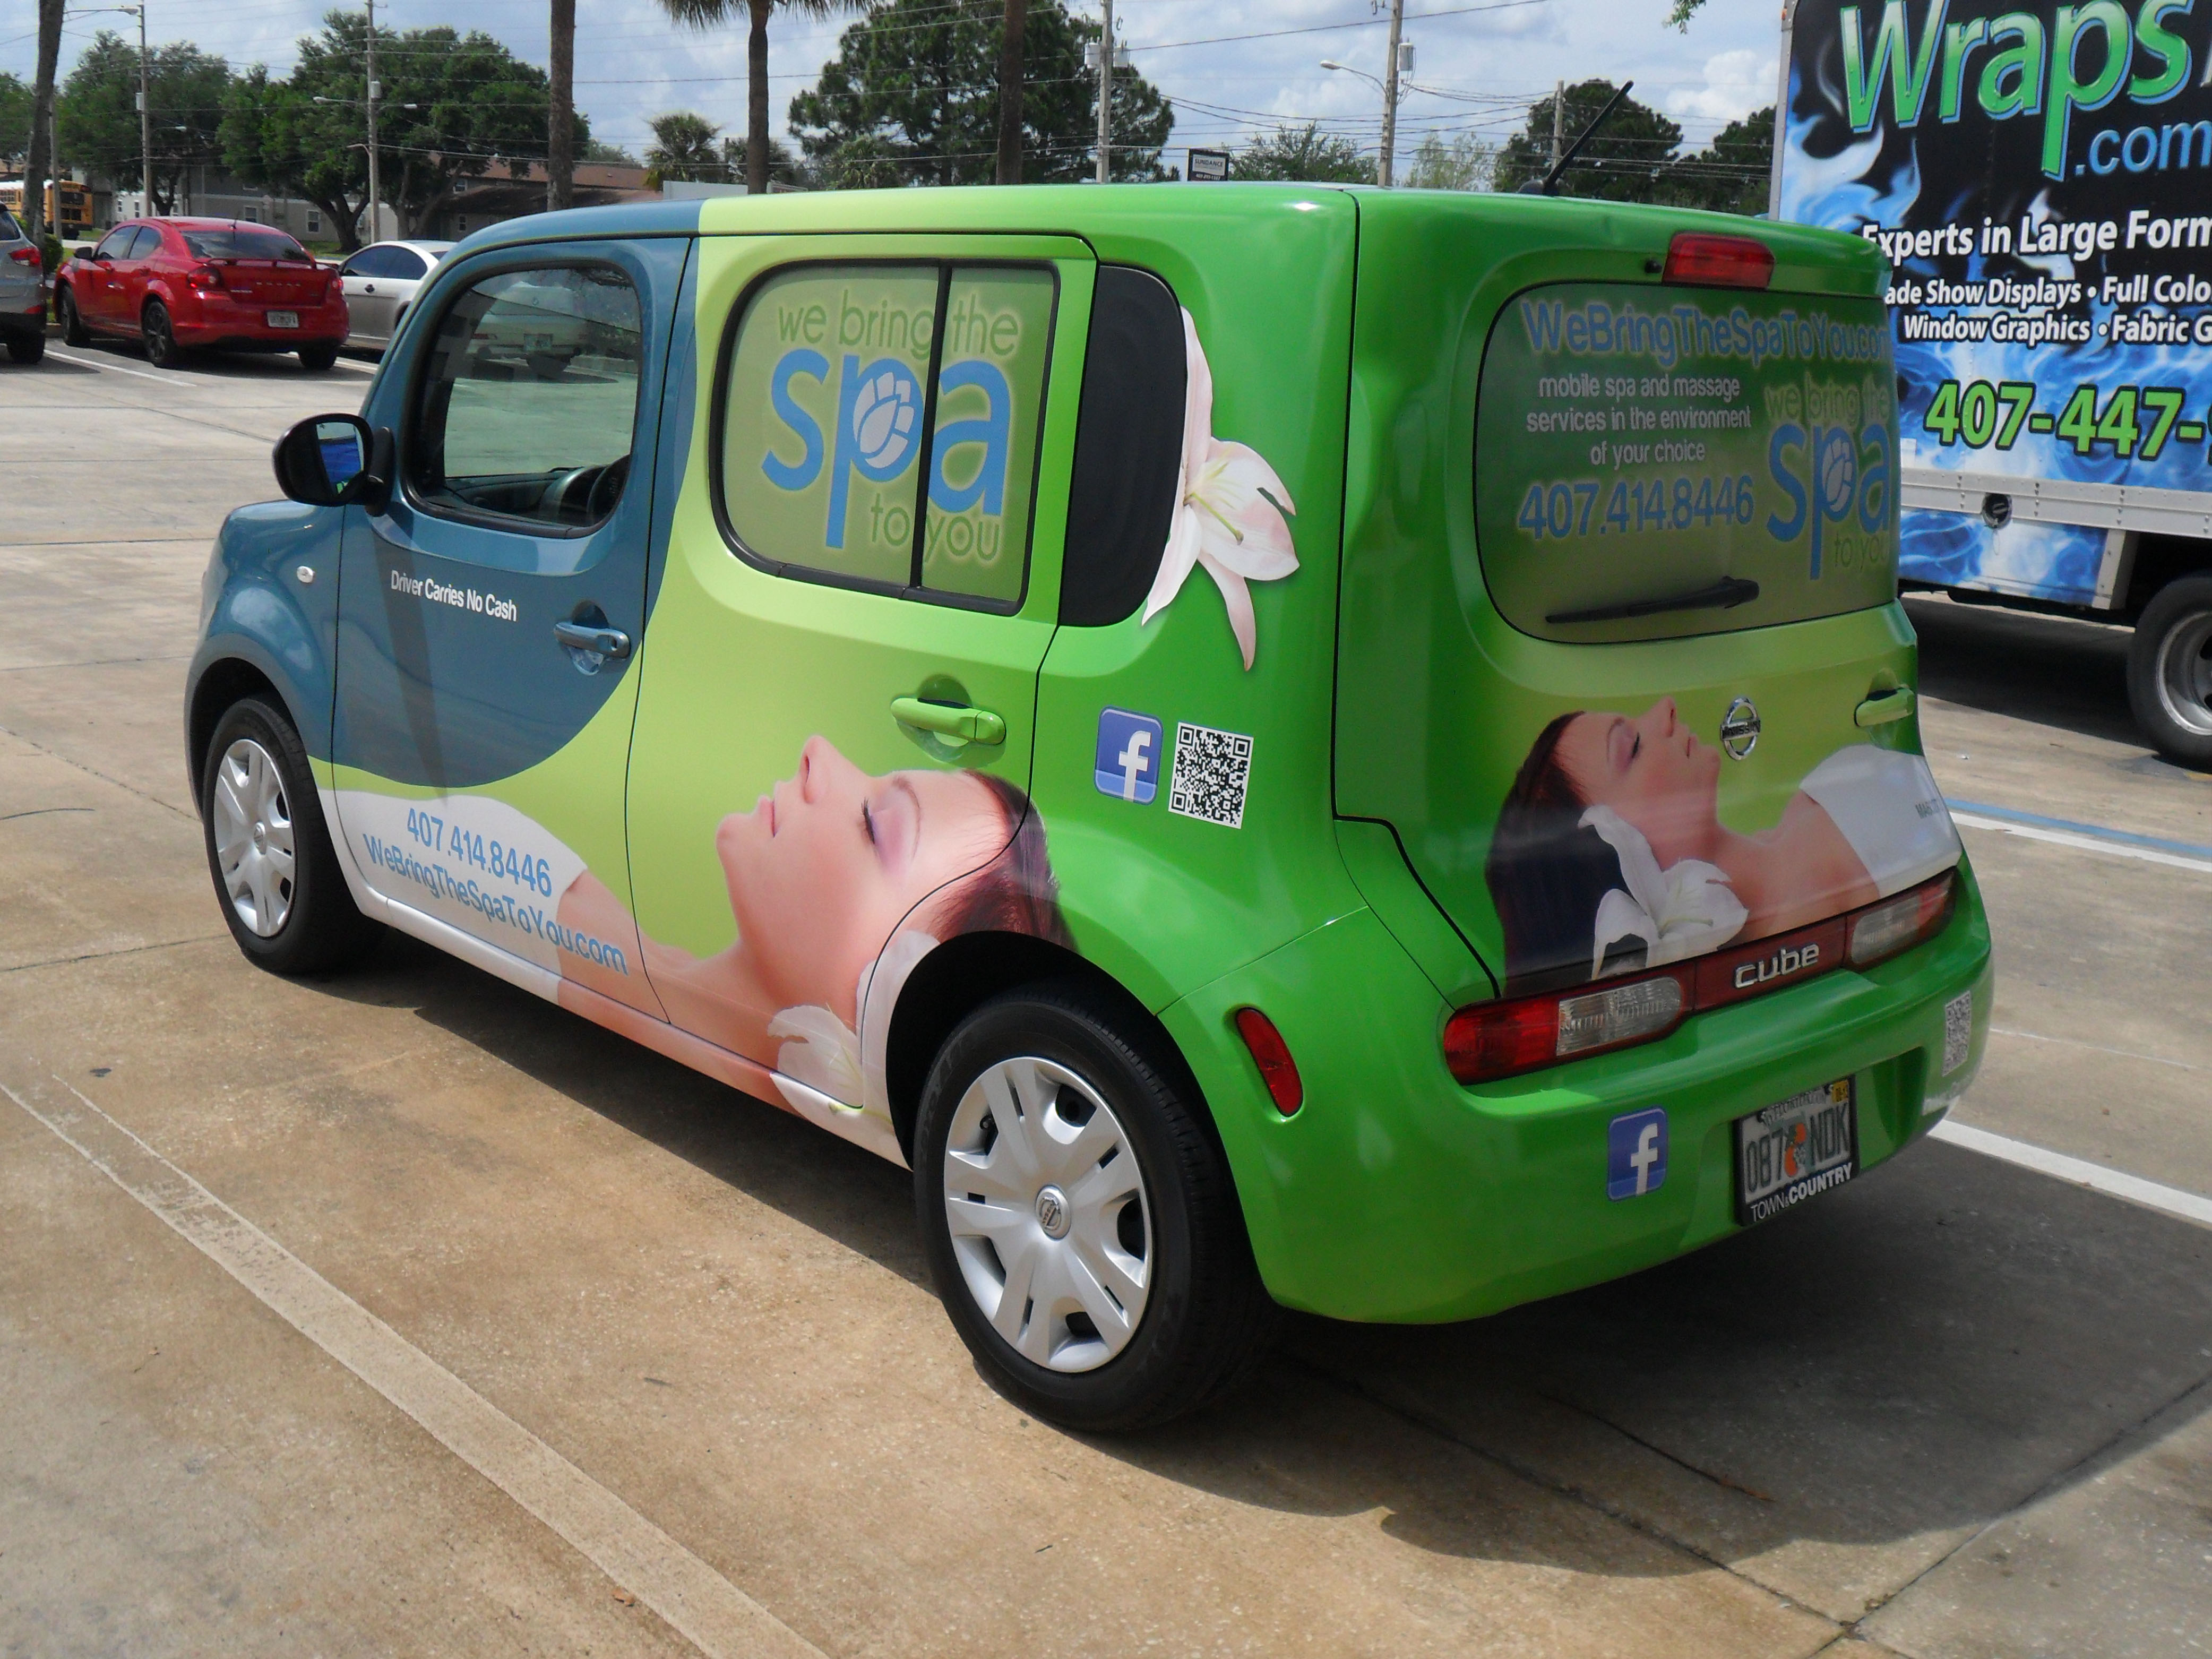 Sponsorship marketing used on cube car for we bring the spa to you